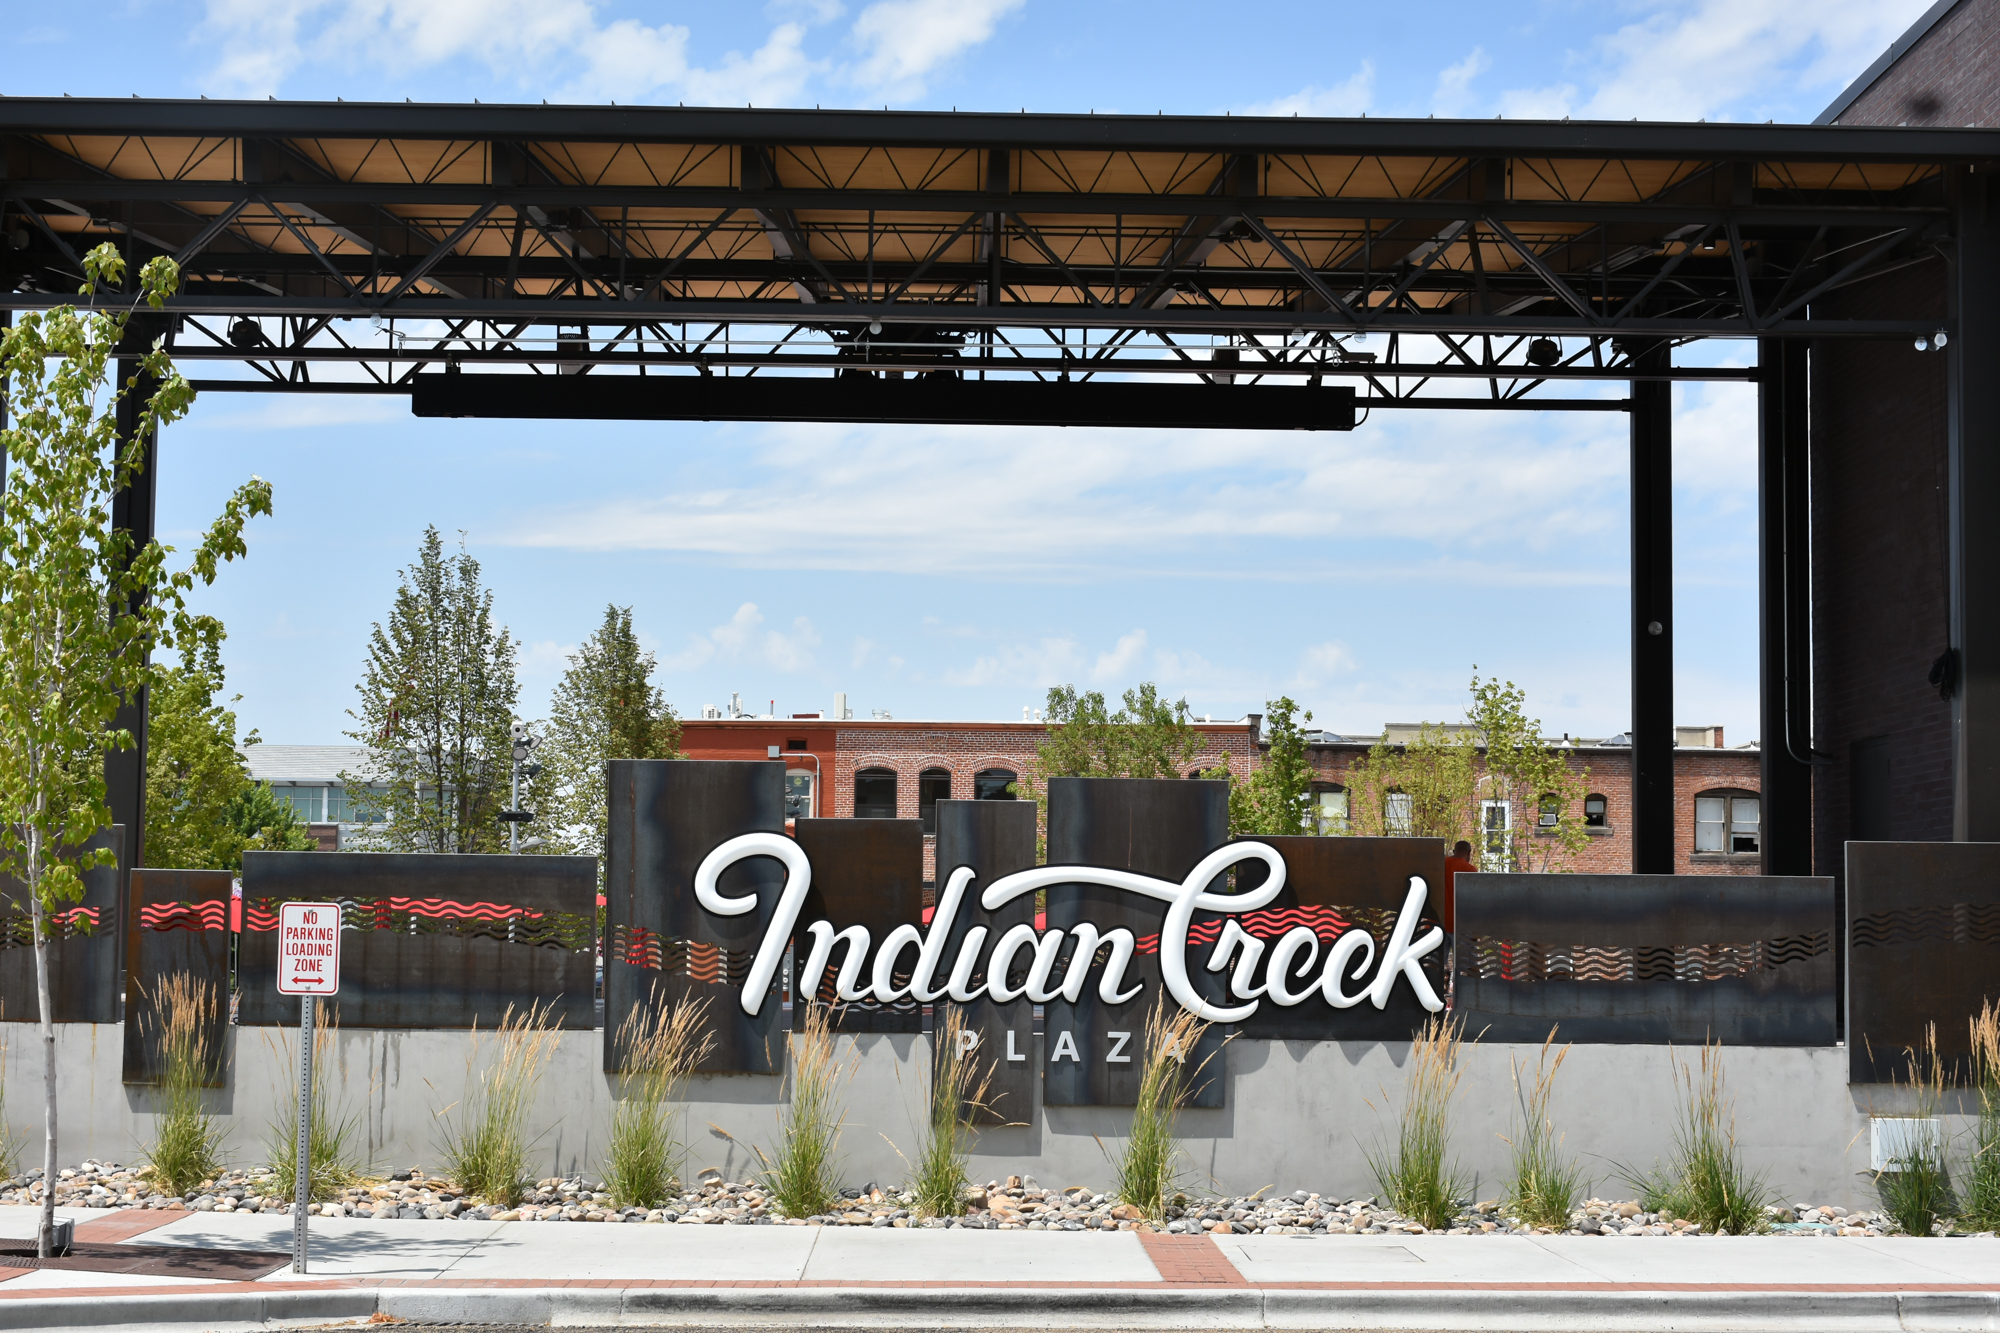 Indian Creek Plaza Entryway Sign